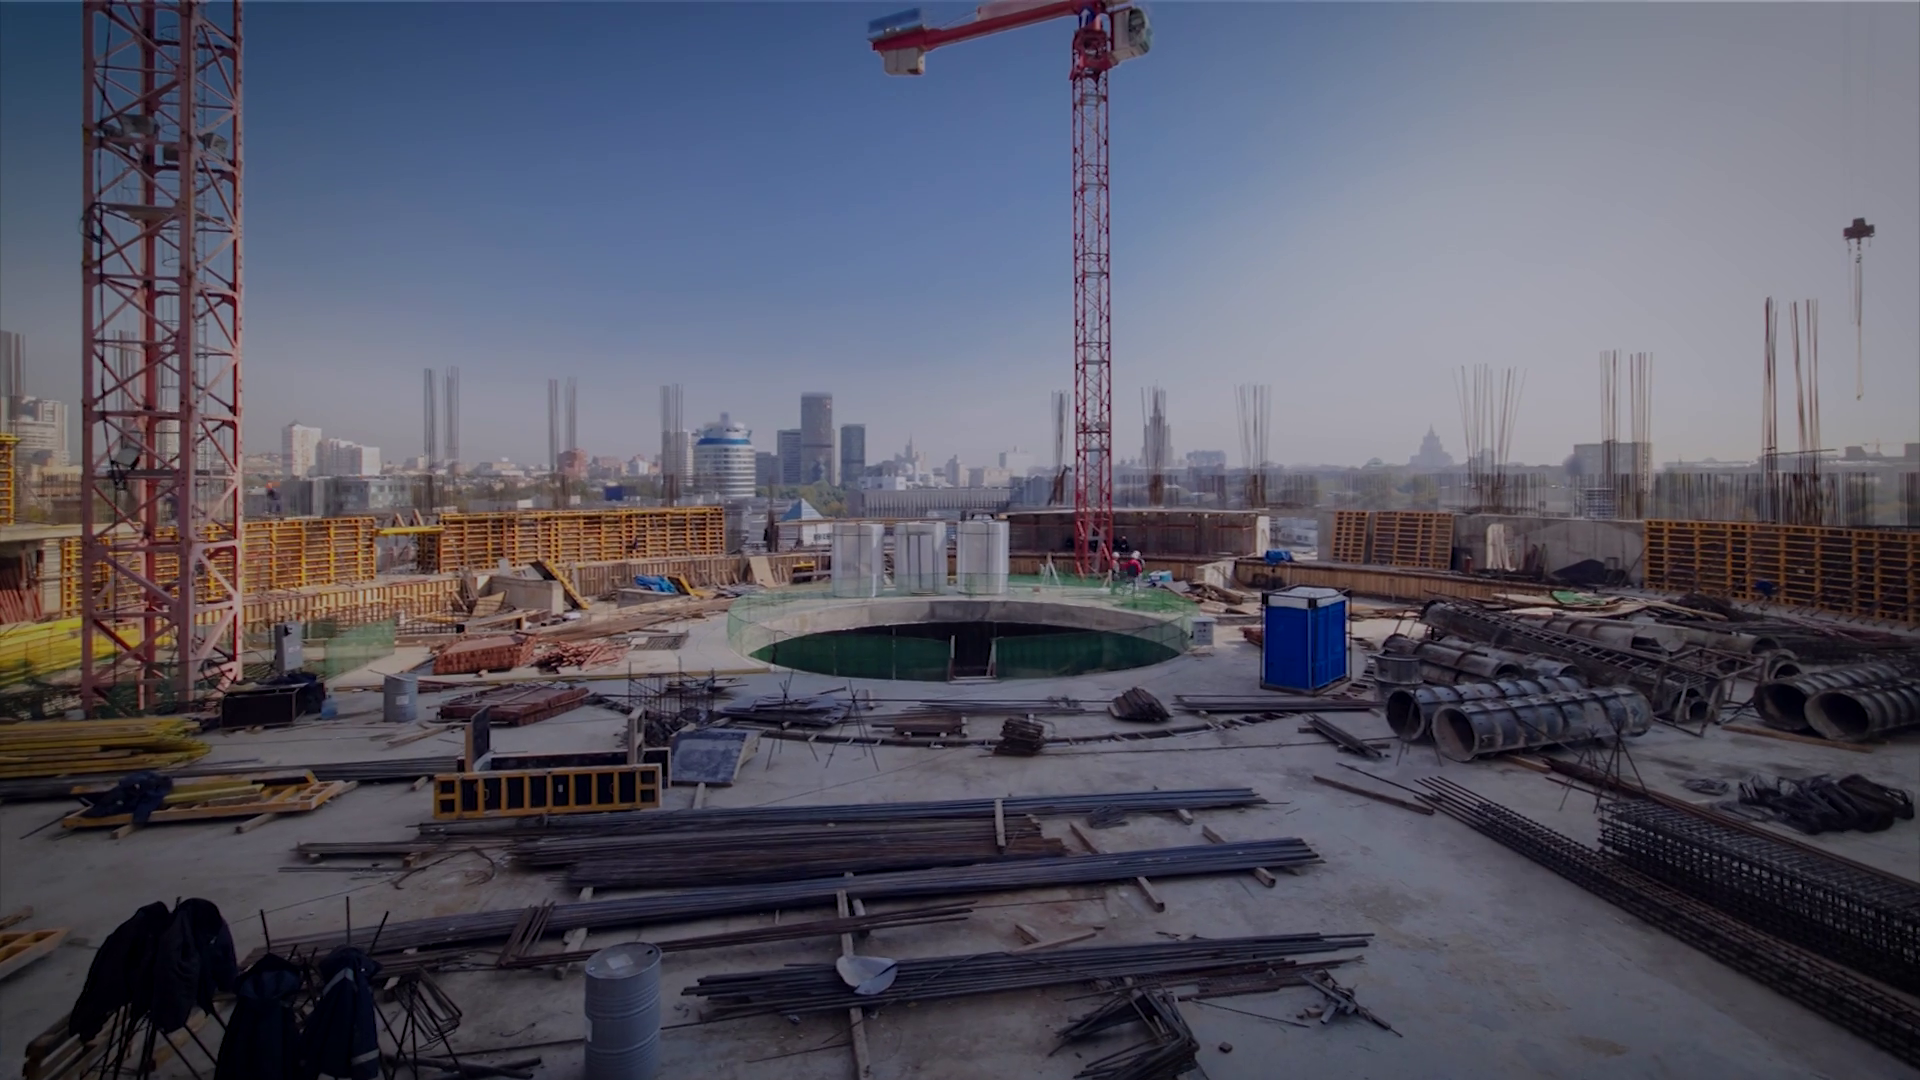 Large scale construction site overlooking the city skyline